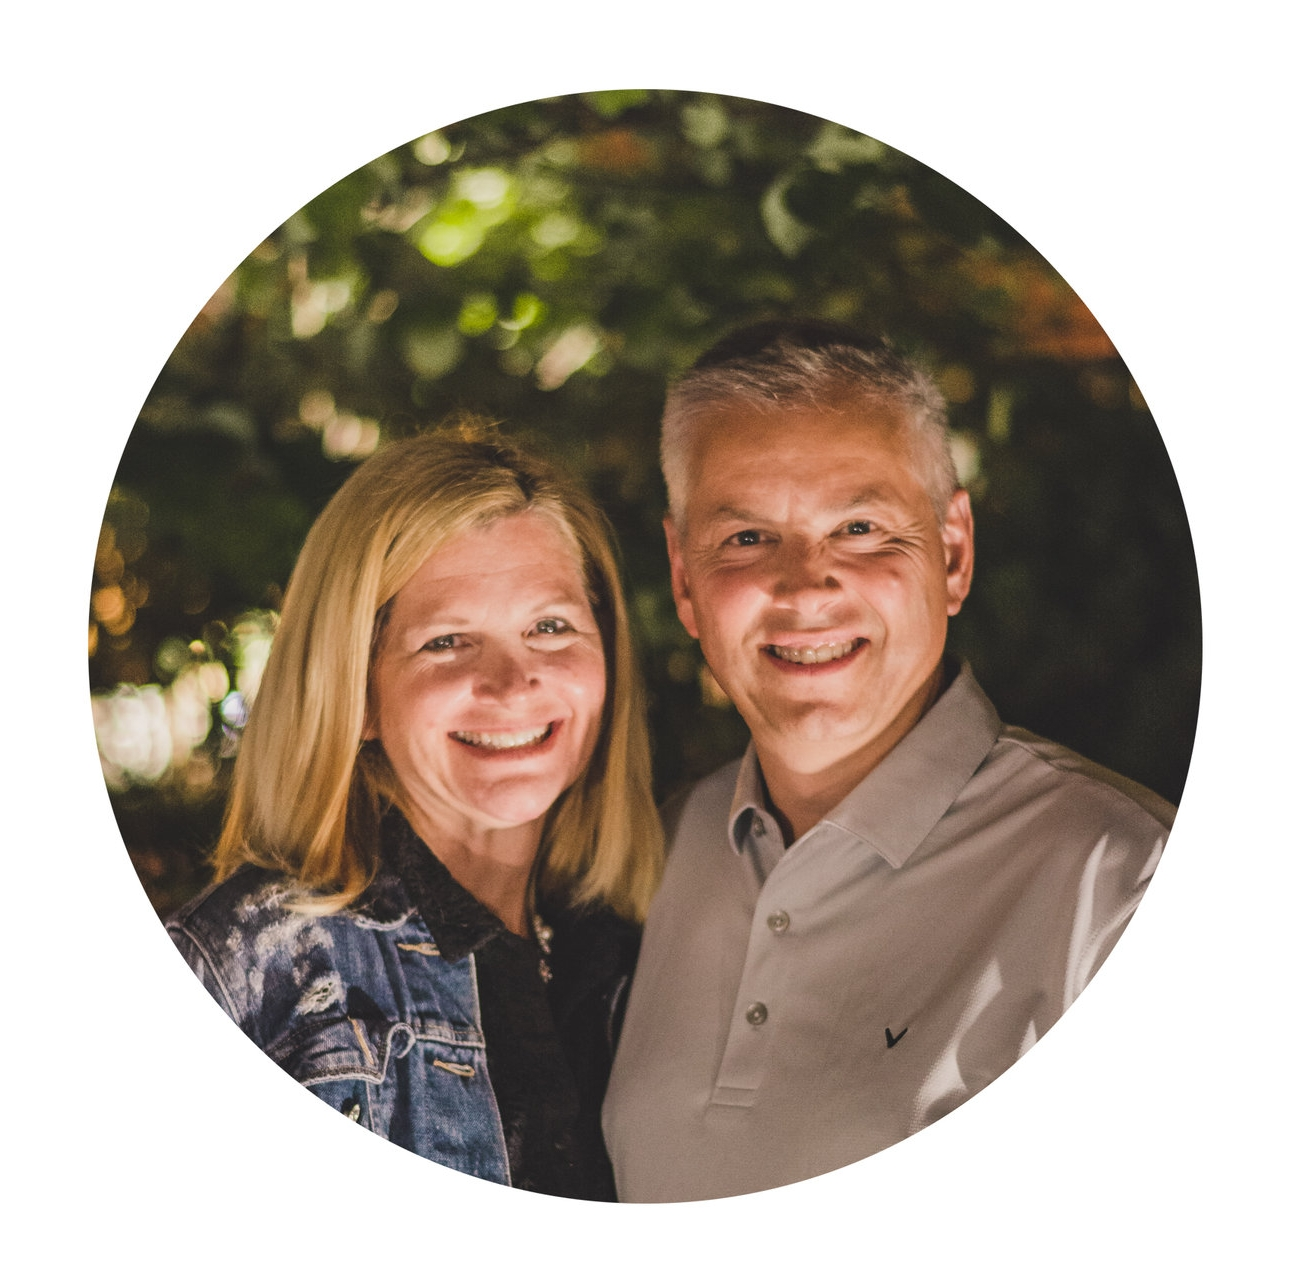 Lou & Theresa Caponi    Campus:  Center Moriches   Day : Thursdays   Time : 7:30pm   Location : 4 Alexis Lane Speonk, NY 11972   Upcoming Dates : 10/3, 10/17, 10/31, 11/14, 12/5